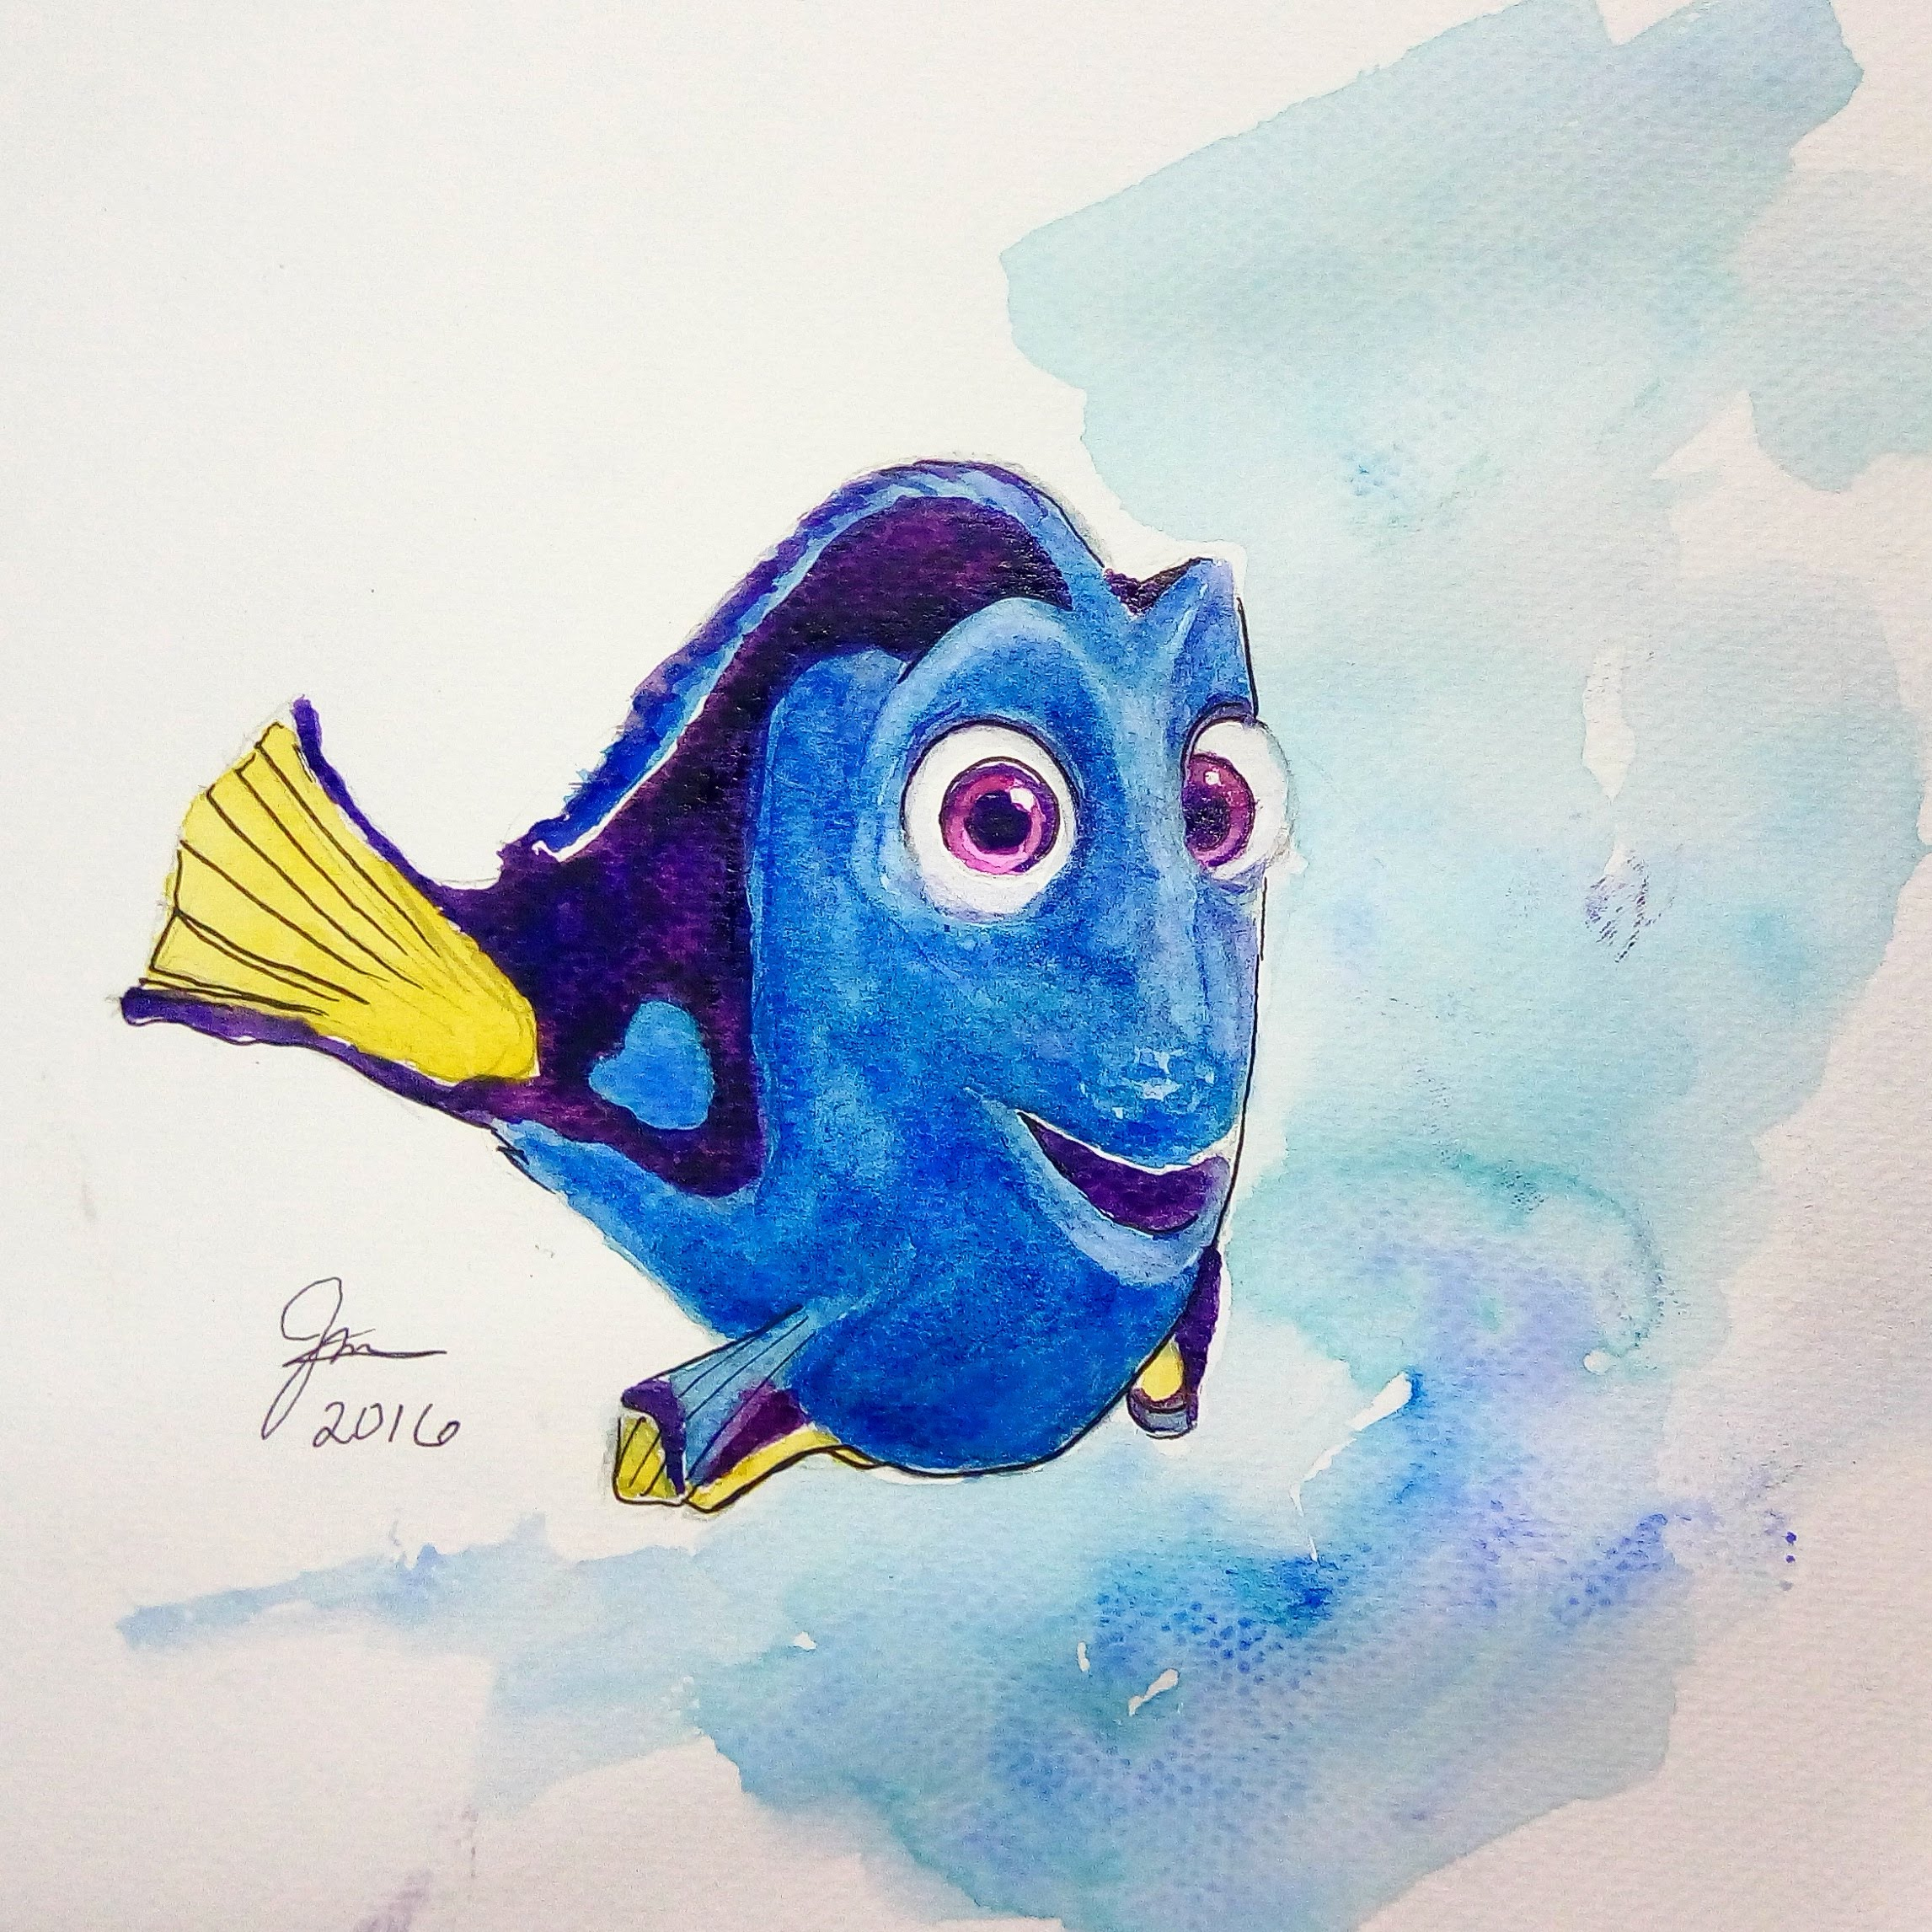 2293x2293 Finding Dory Speed Painting Watercolor